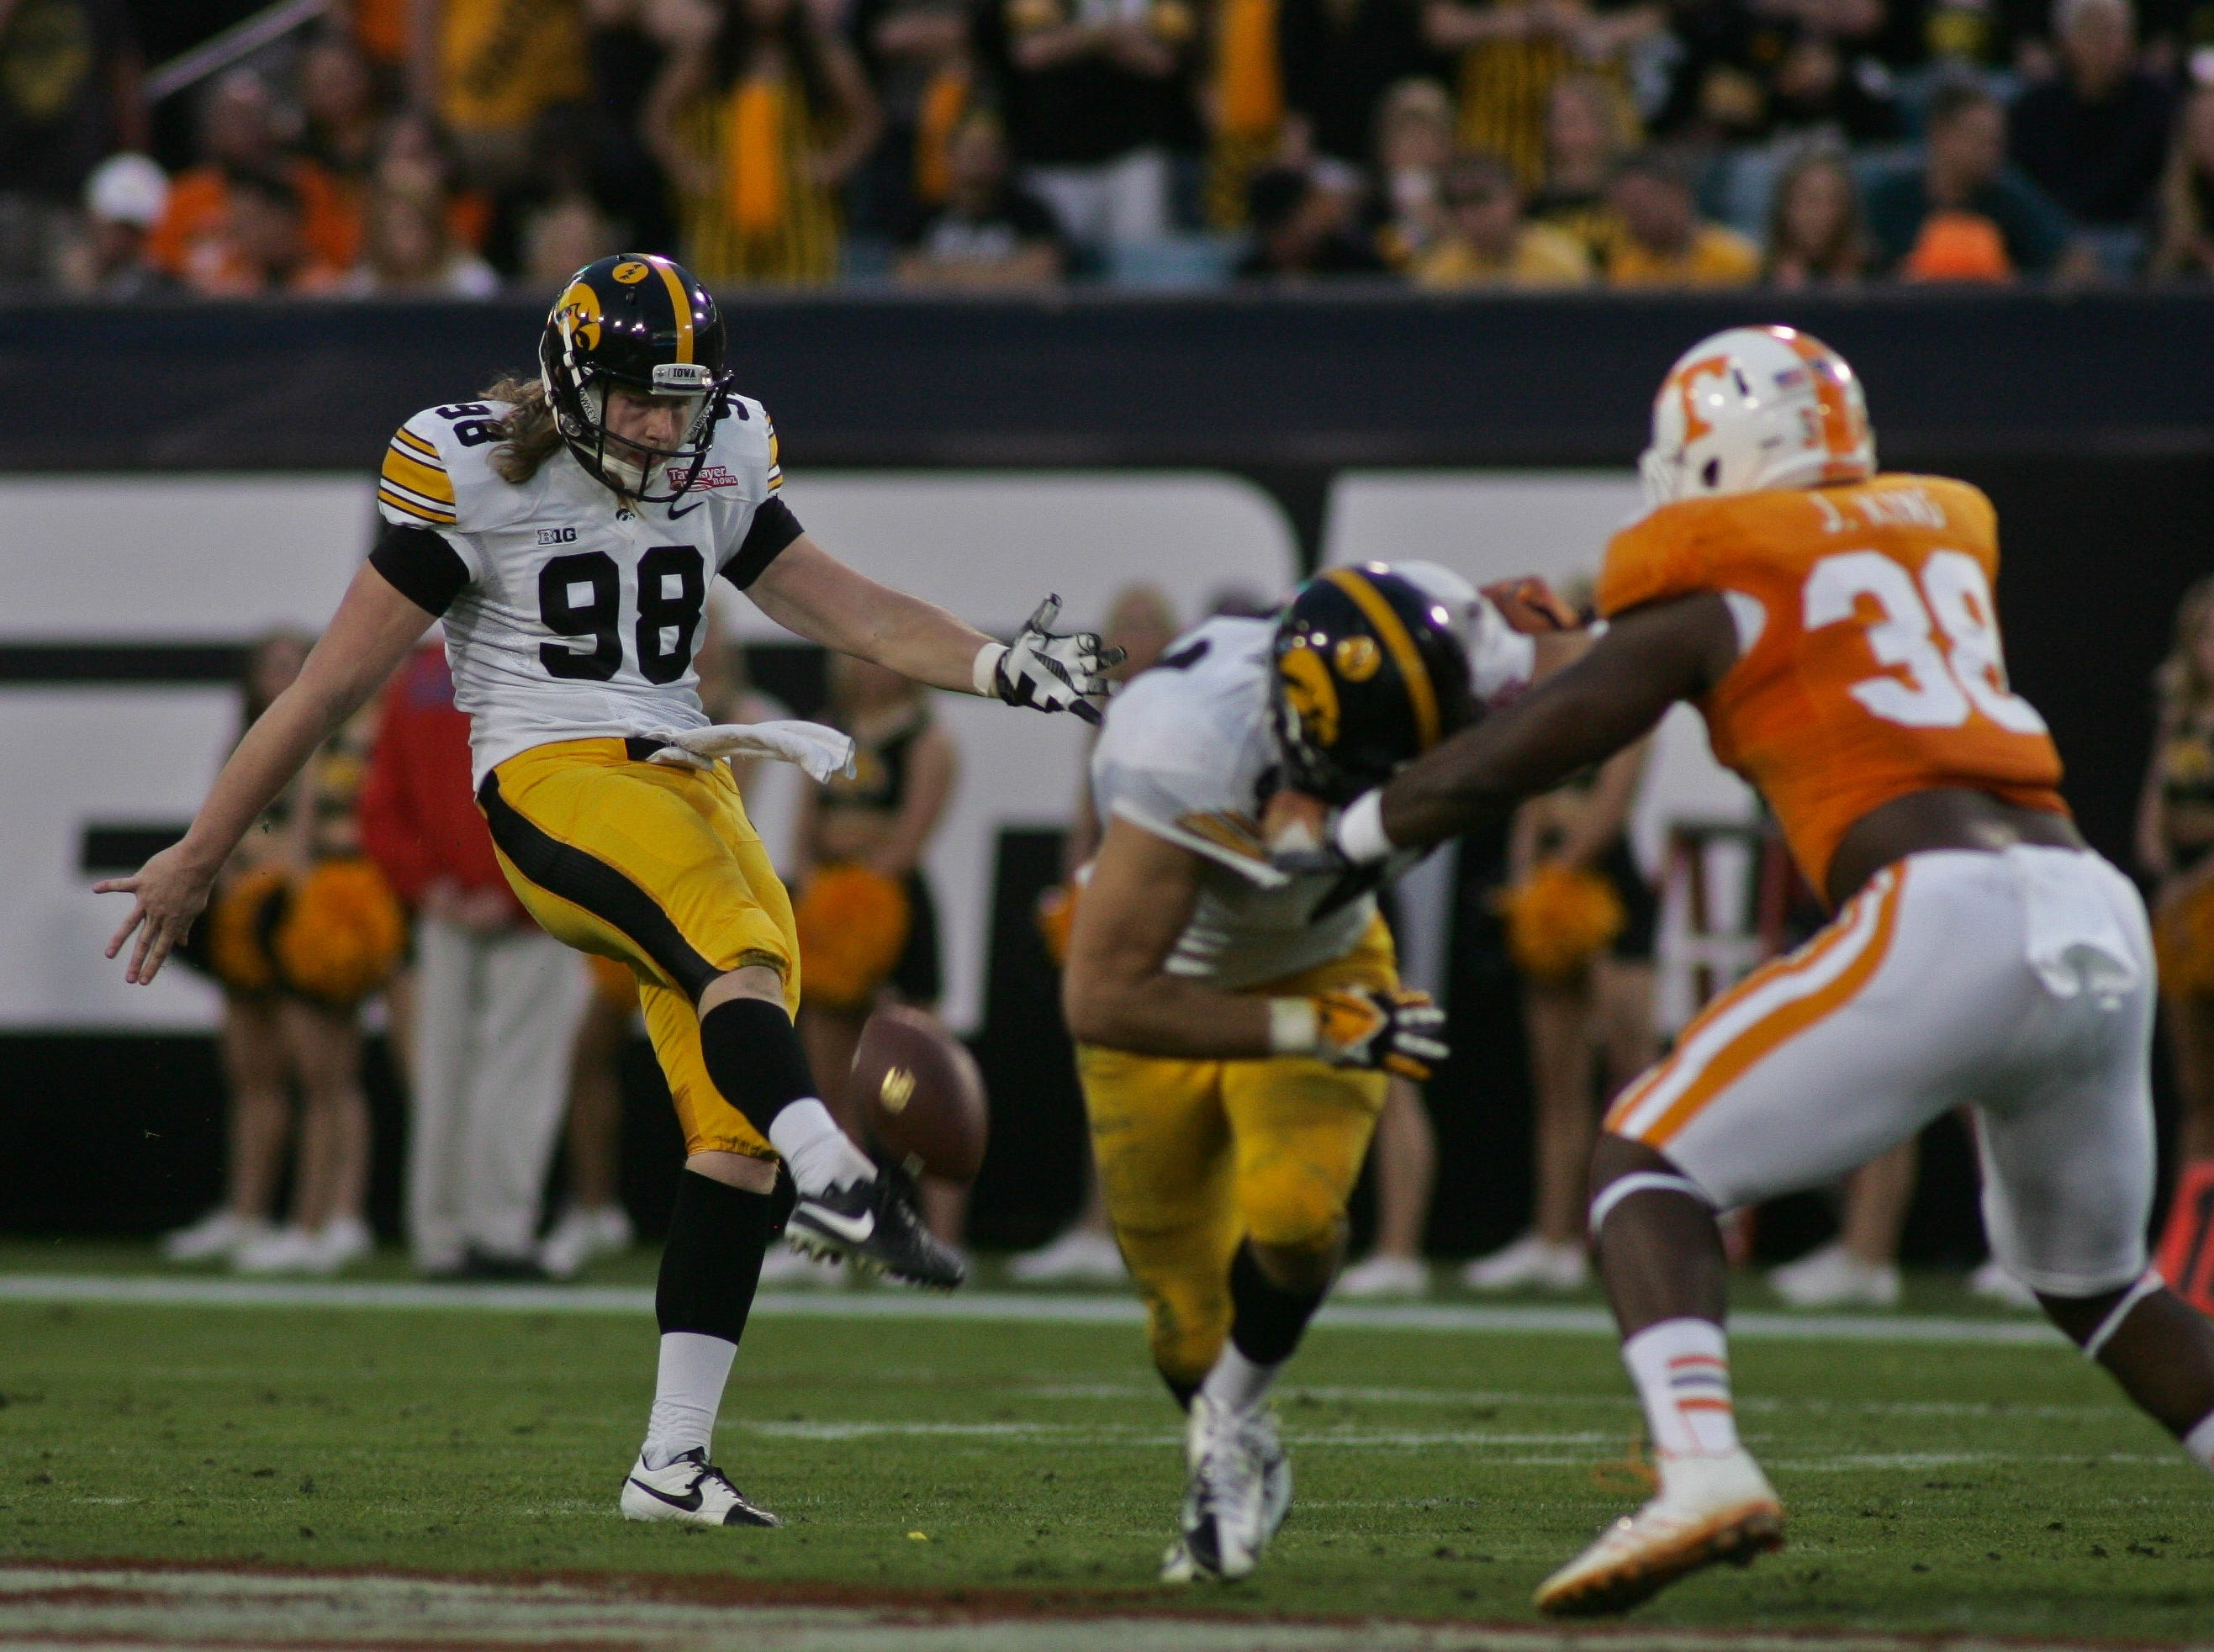 Jan 2, 2015; Jacksonville, FL, USA; Iowa Hawkeyes punter Connor Kornbrath (98) punts the ball in the third quarter of the 2015 TaxSlayer Bowl against the Tennessee Volunteers at EverBank Field. The Tennessee Volunteers beat the Iowa Hawkeyes 45-28. Mandatory Credit: Phil Sears-USA TODAY Sports